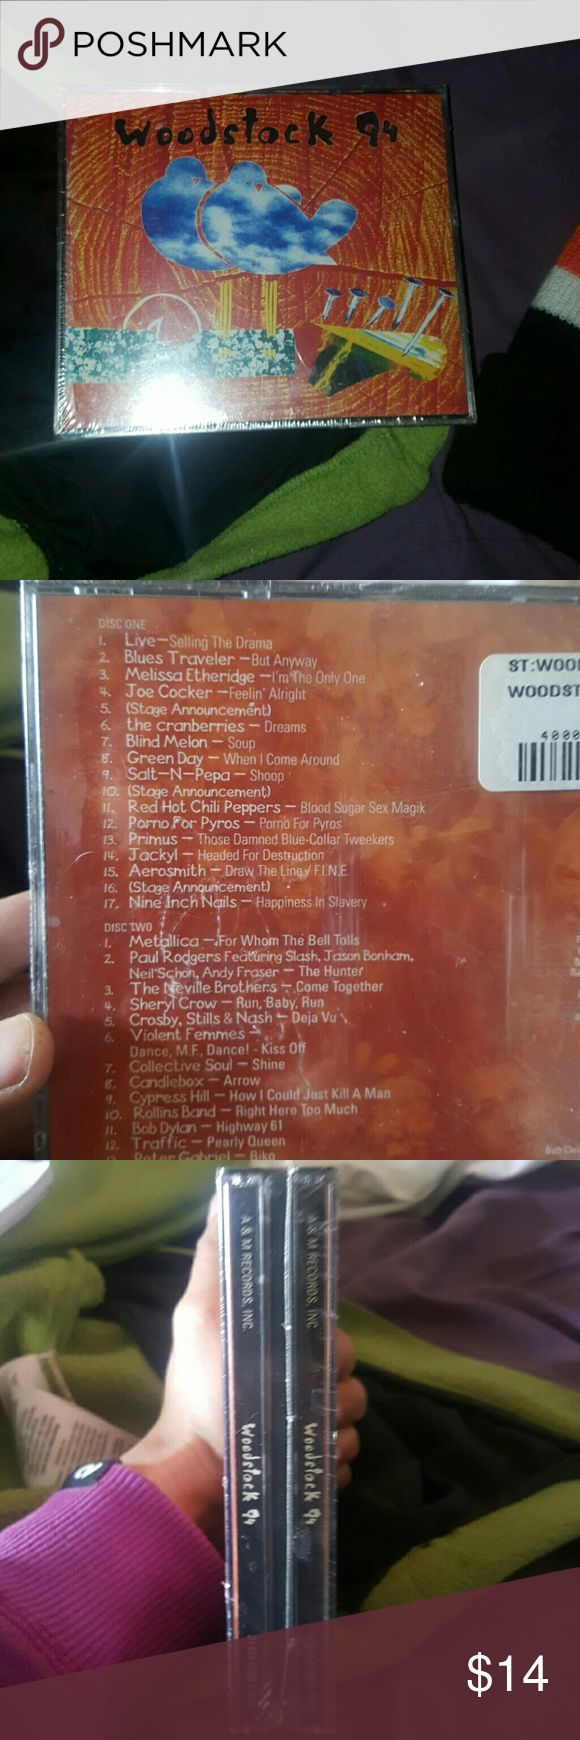 NEW/Sealed- Woodstock 99 New - WOODSTOCK 99- DOUBLE Disk. Still wrapped. See photos for song list. Other